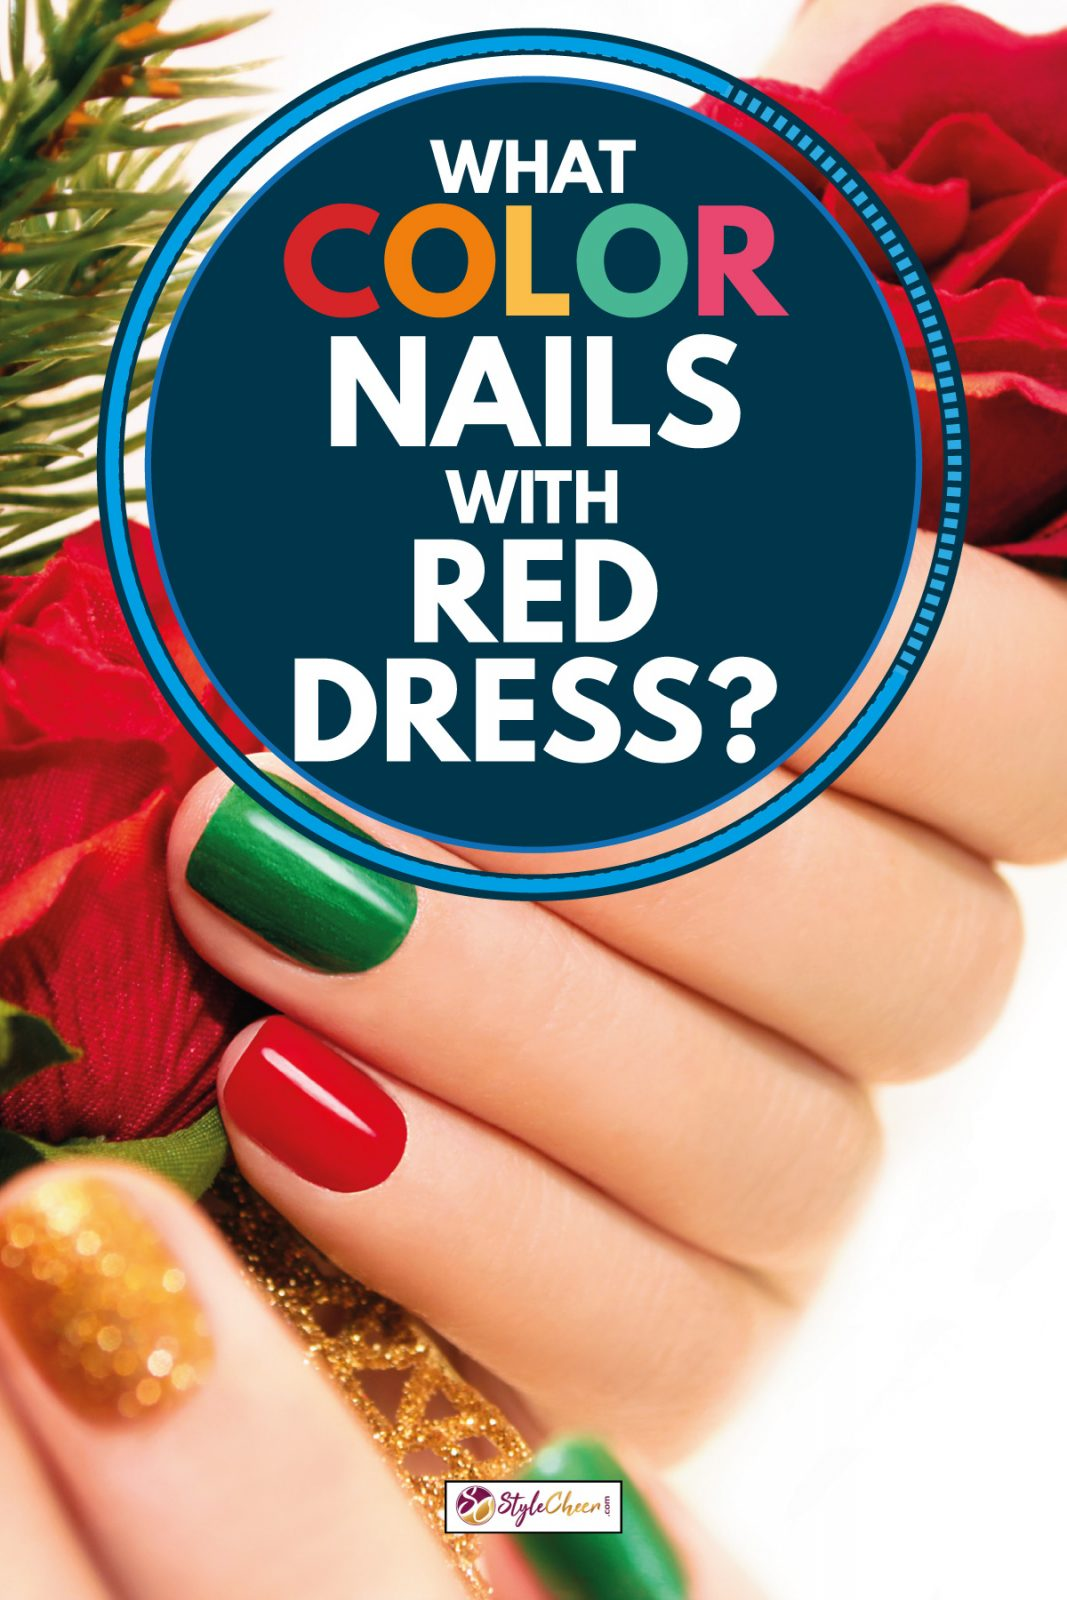 Nails For Red Dress : nails, dress, Color, Nails, Dress?, StyleCheer.com